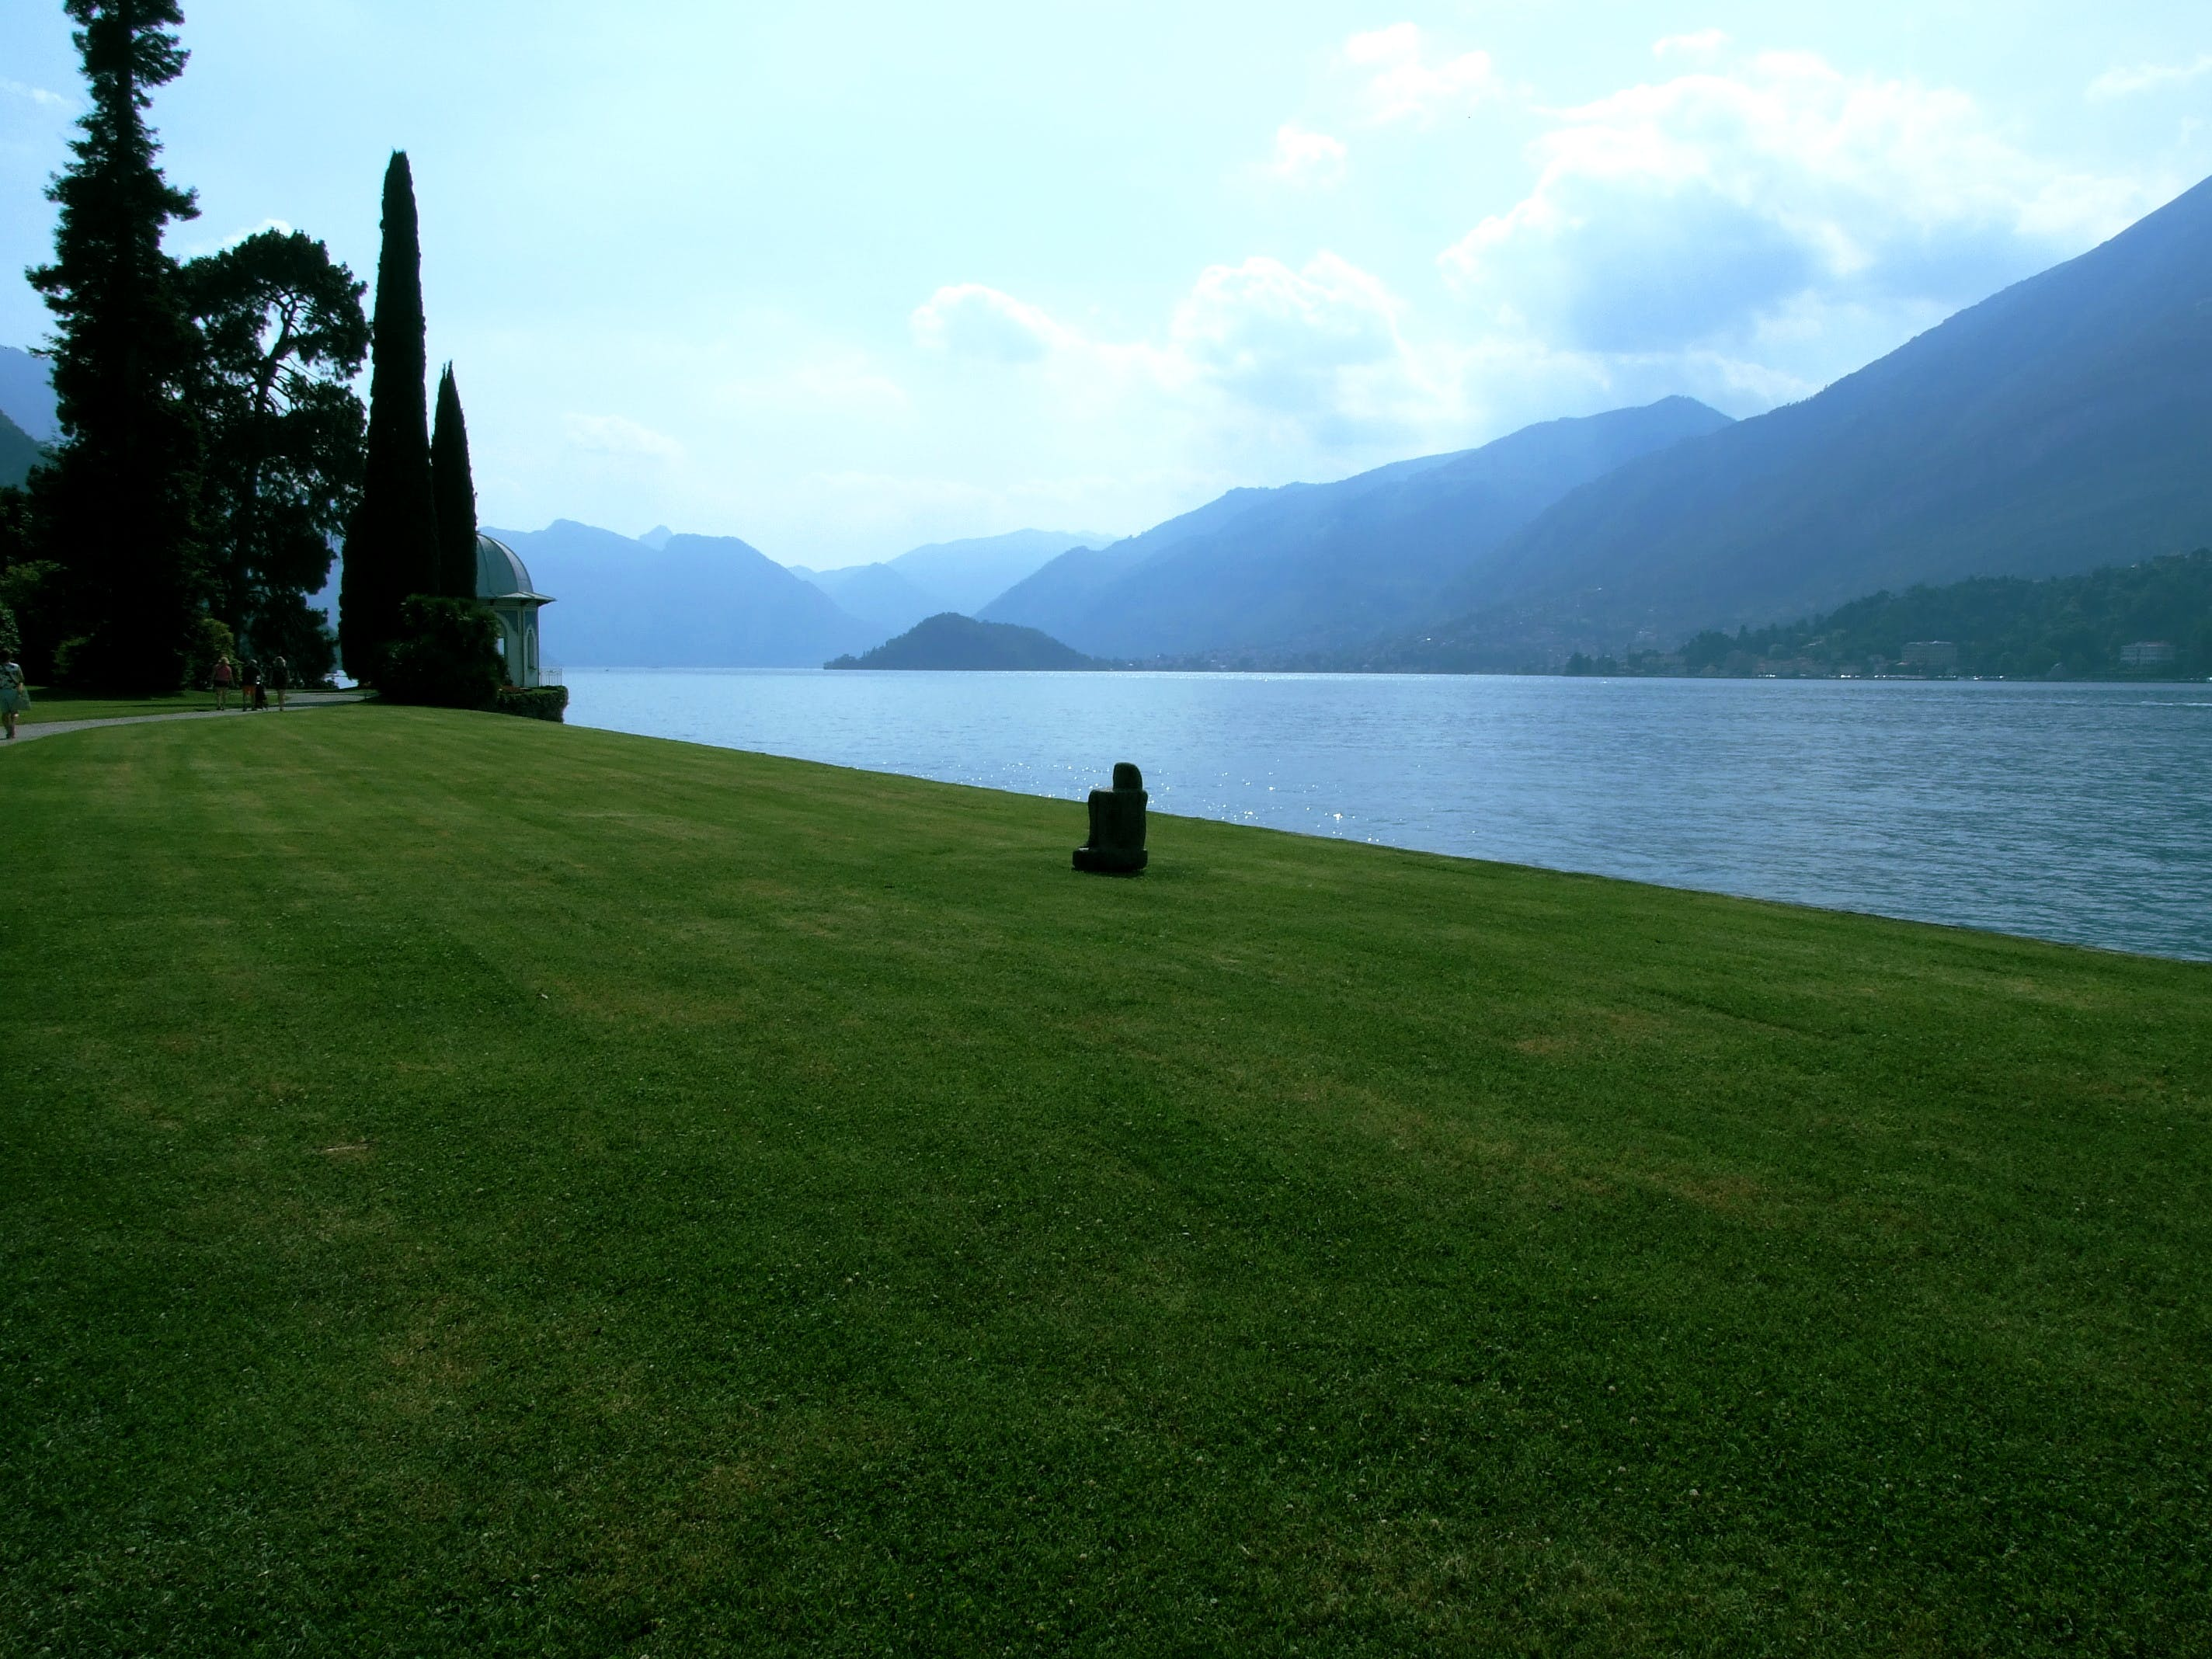 Free stock photo of grass, lake como, mountains, statue